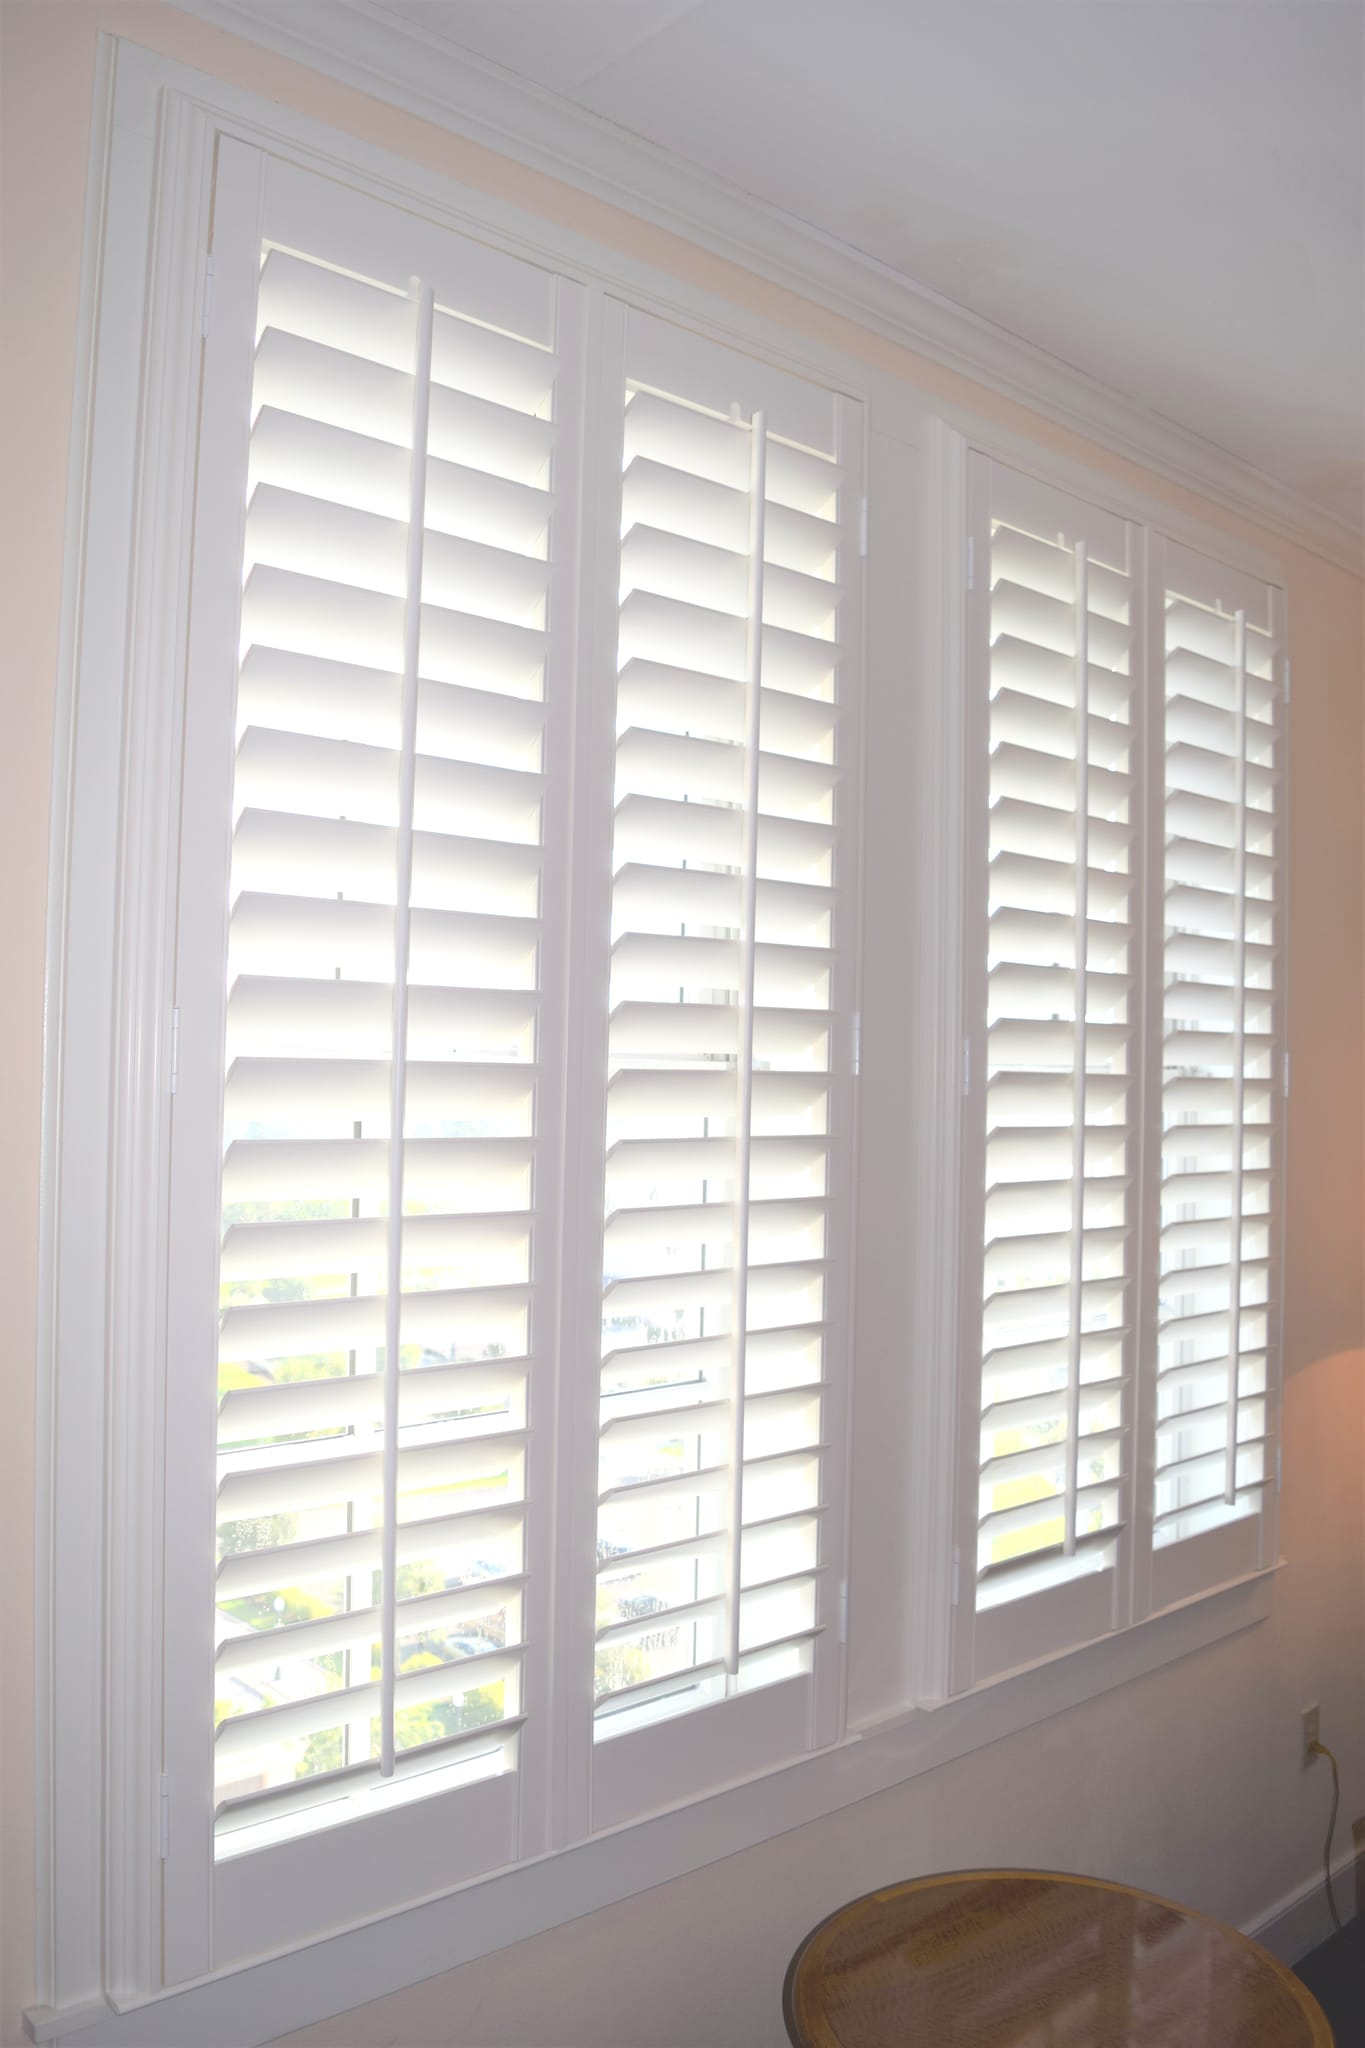 shutters white shutter of by pinterest on plantation panel fit supplied images and real best examples shuttersdublin dublin in life silk blinds